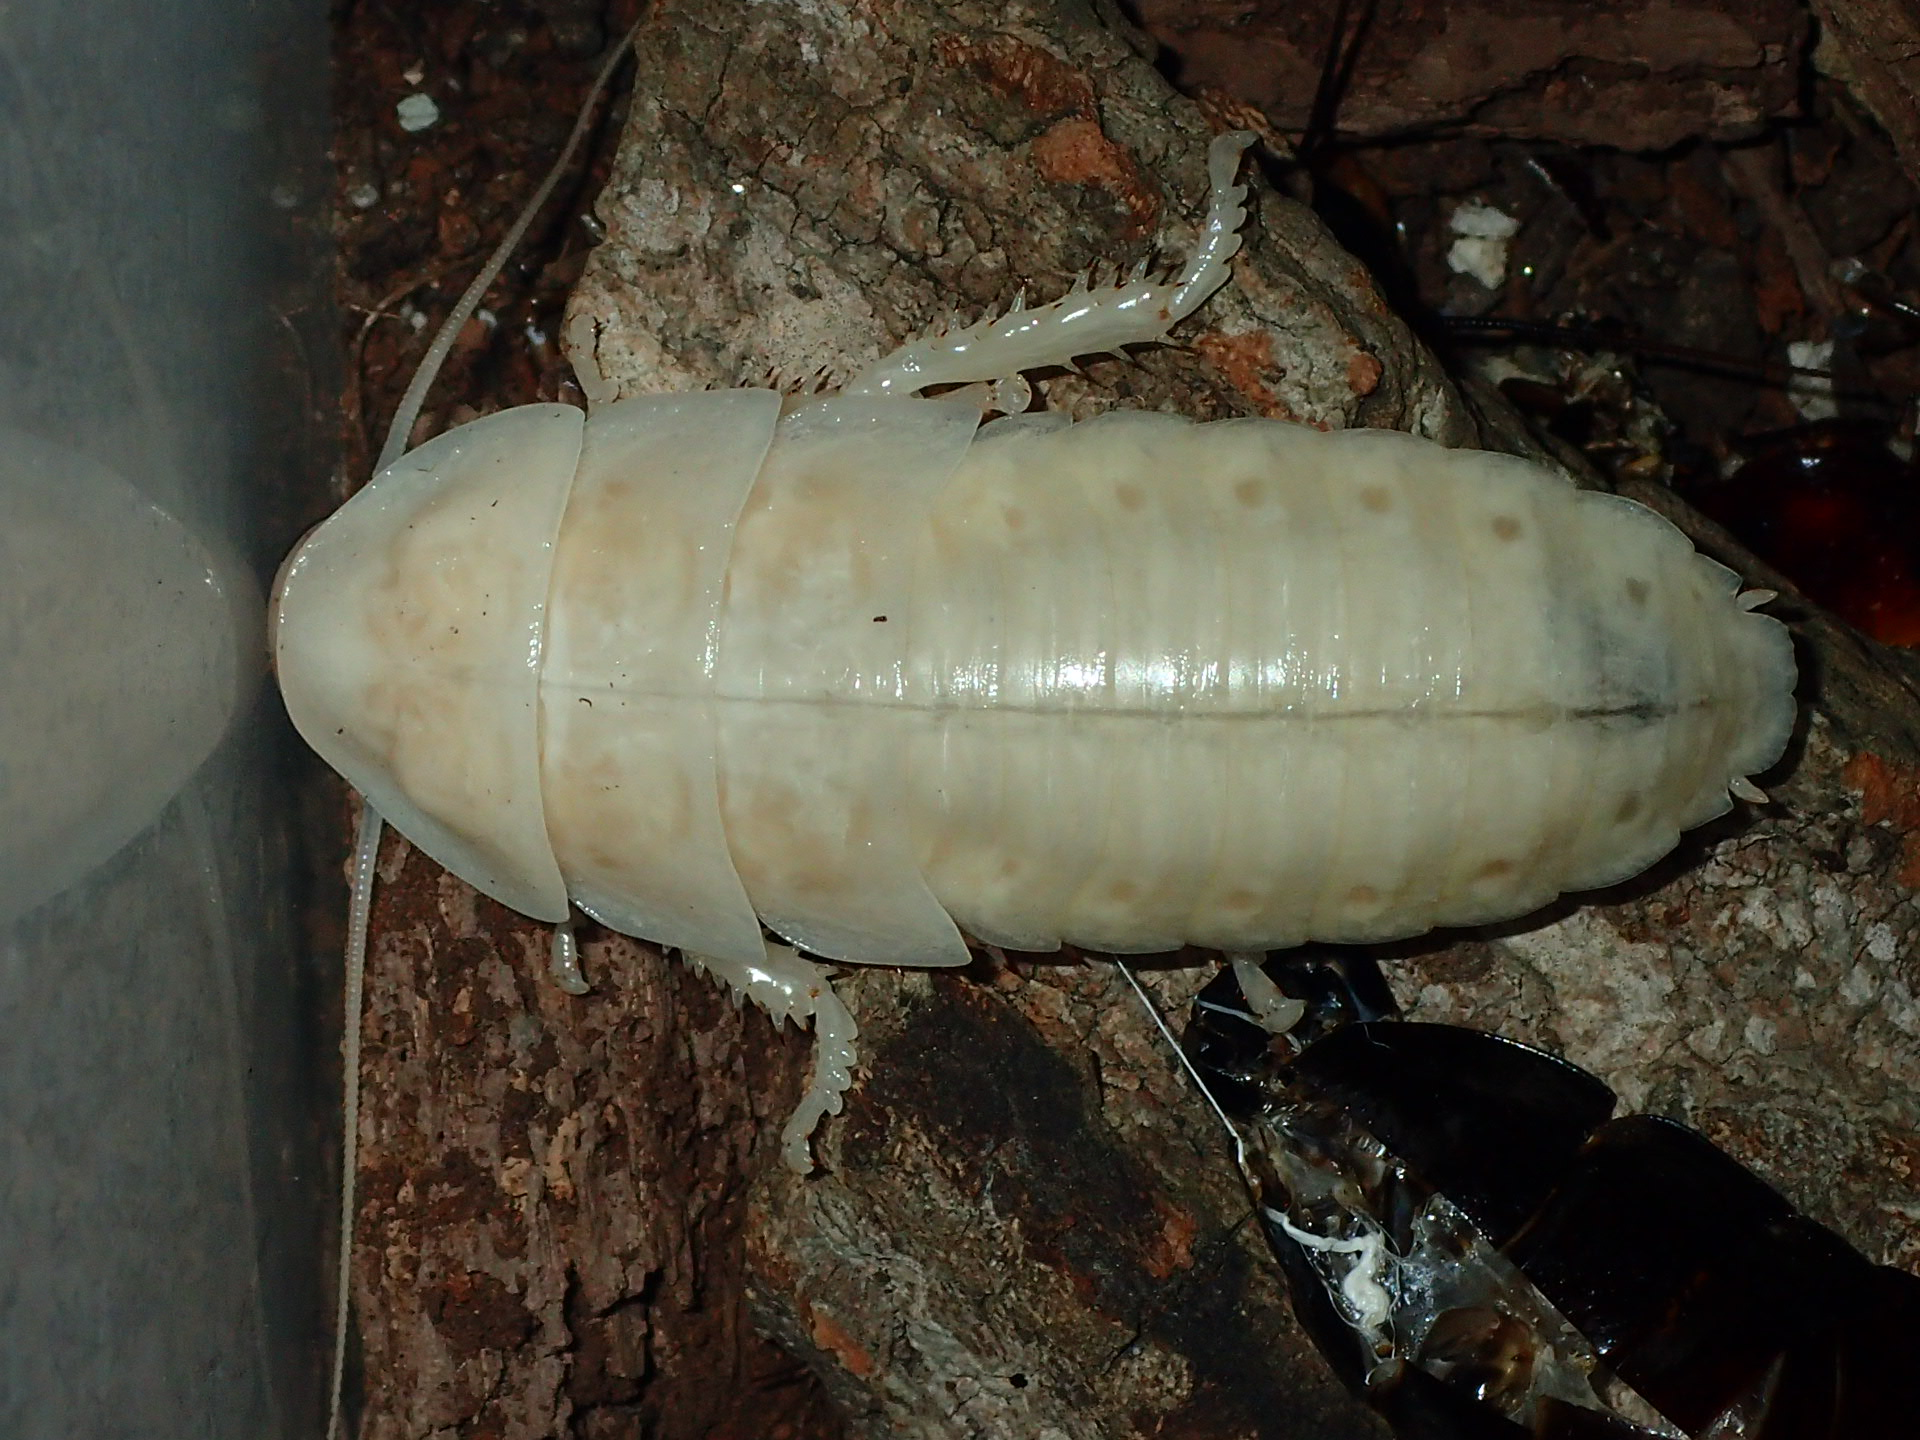 Hissing Roach Freshly Molted